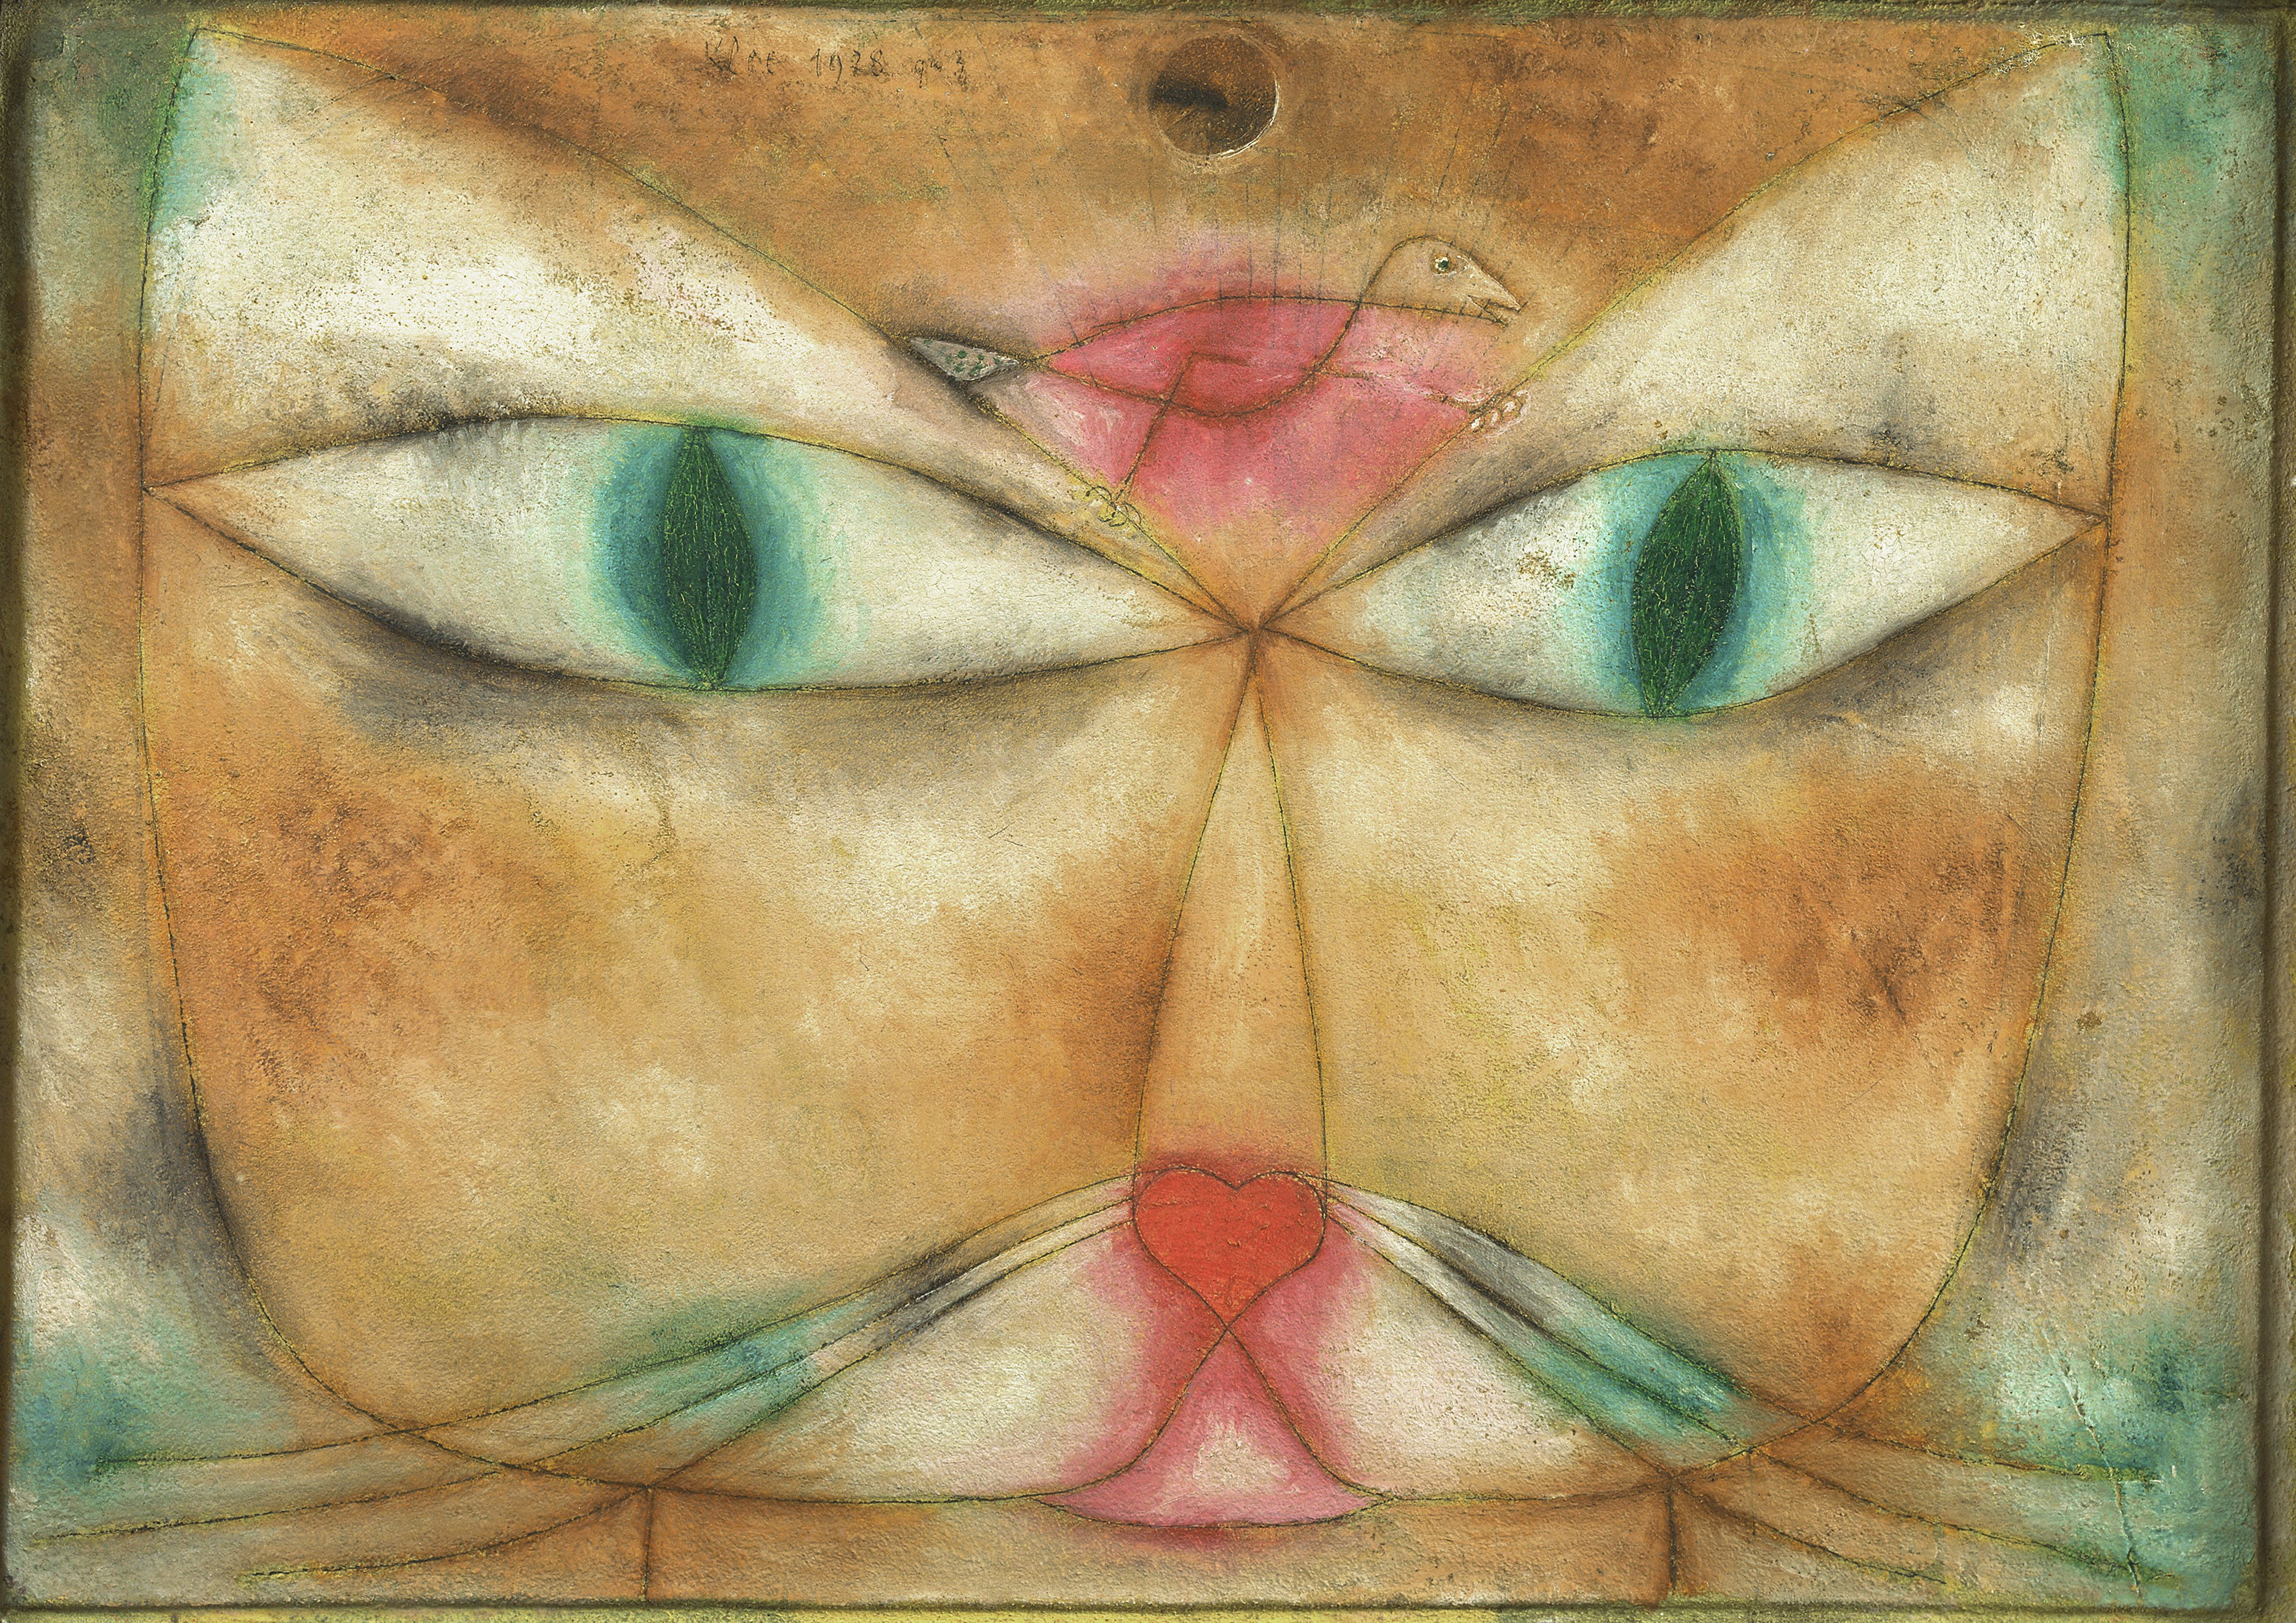 The Life and Art of Paul Klee